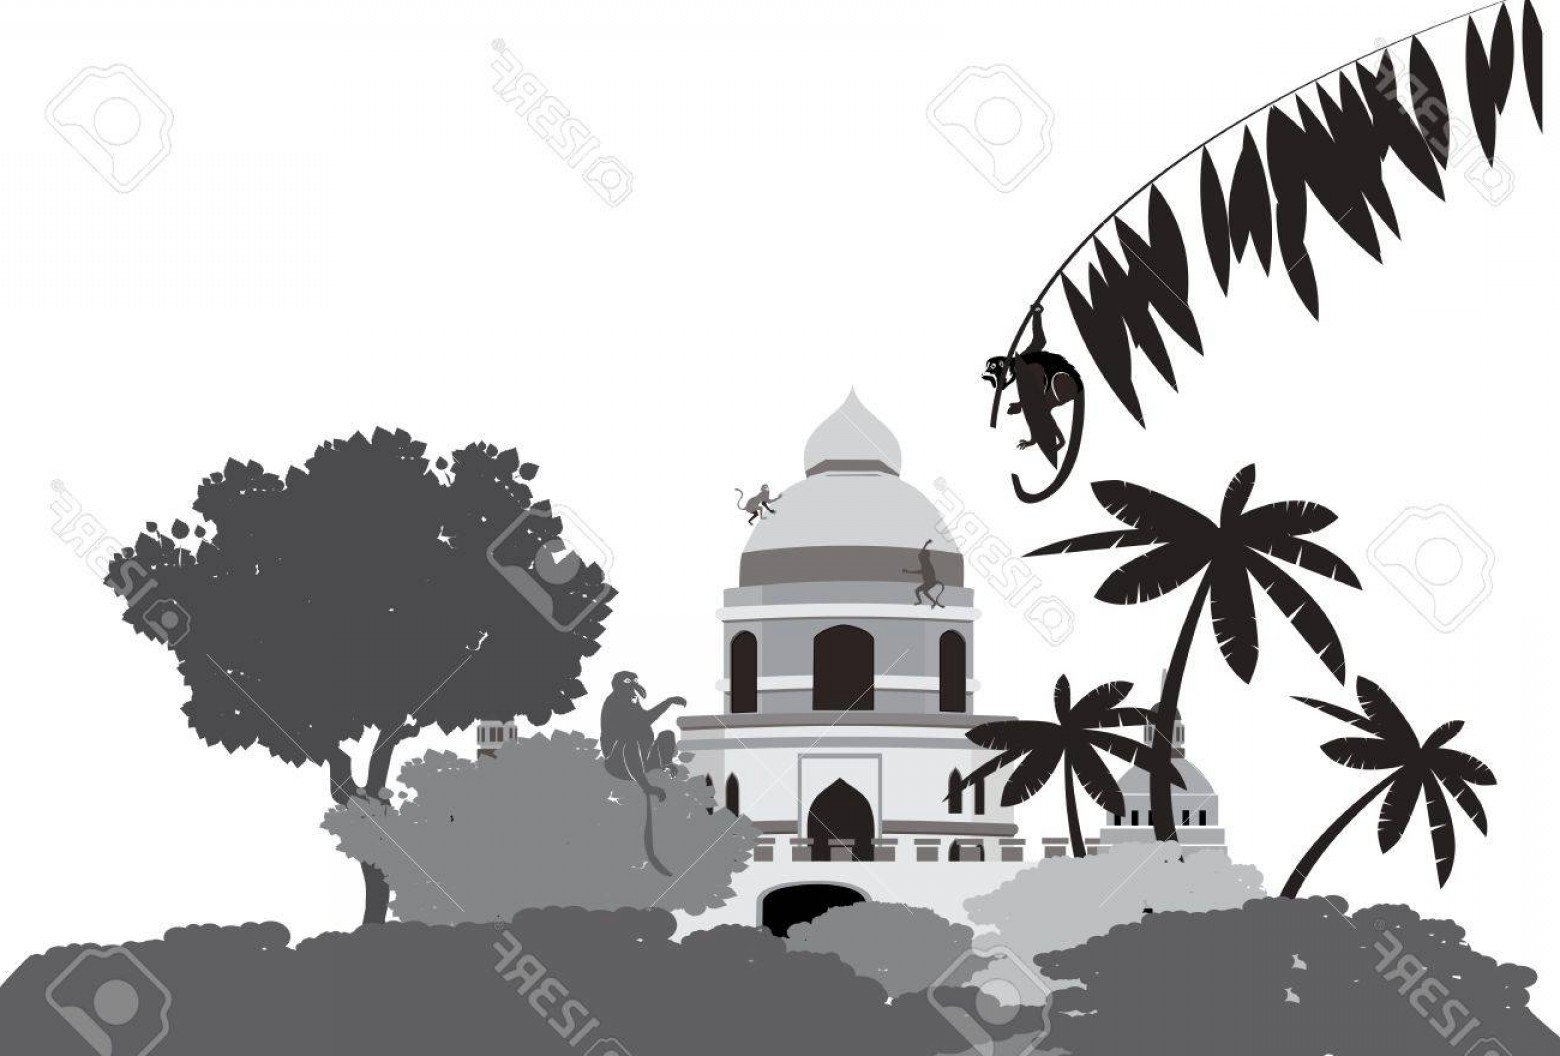 Ancient Jungle Statue Vector Images: Photostock Vector Ancient Temple In The Jungle Vector Illustratration In Grey Colors